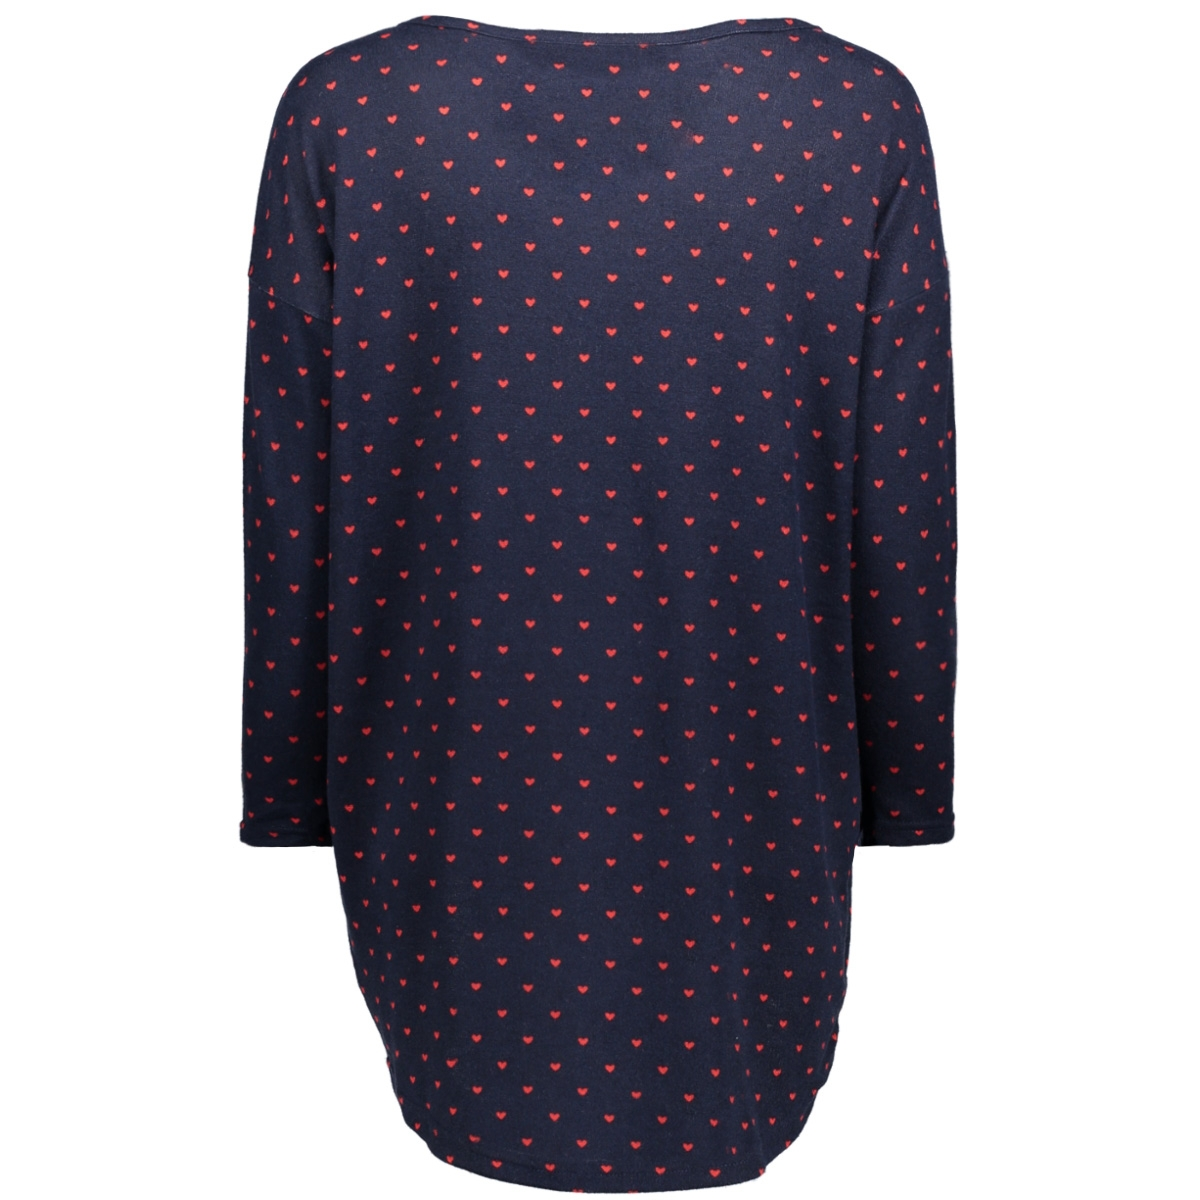 onlelcos 4/5 statement top jrs 15155090 only t-shirt night sky/red hearts